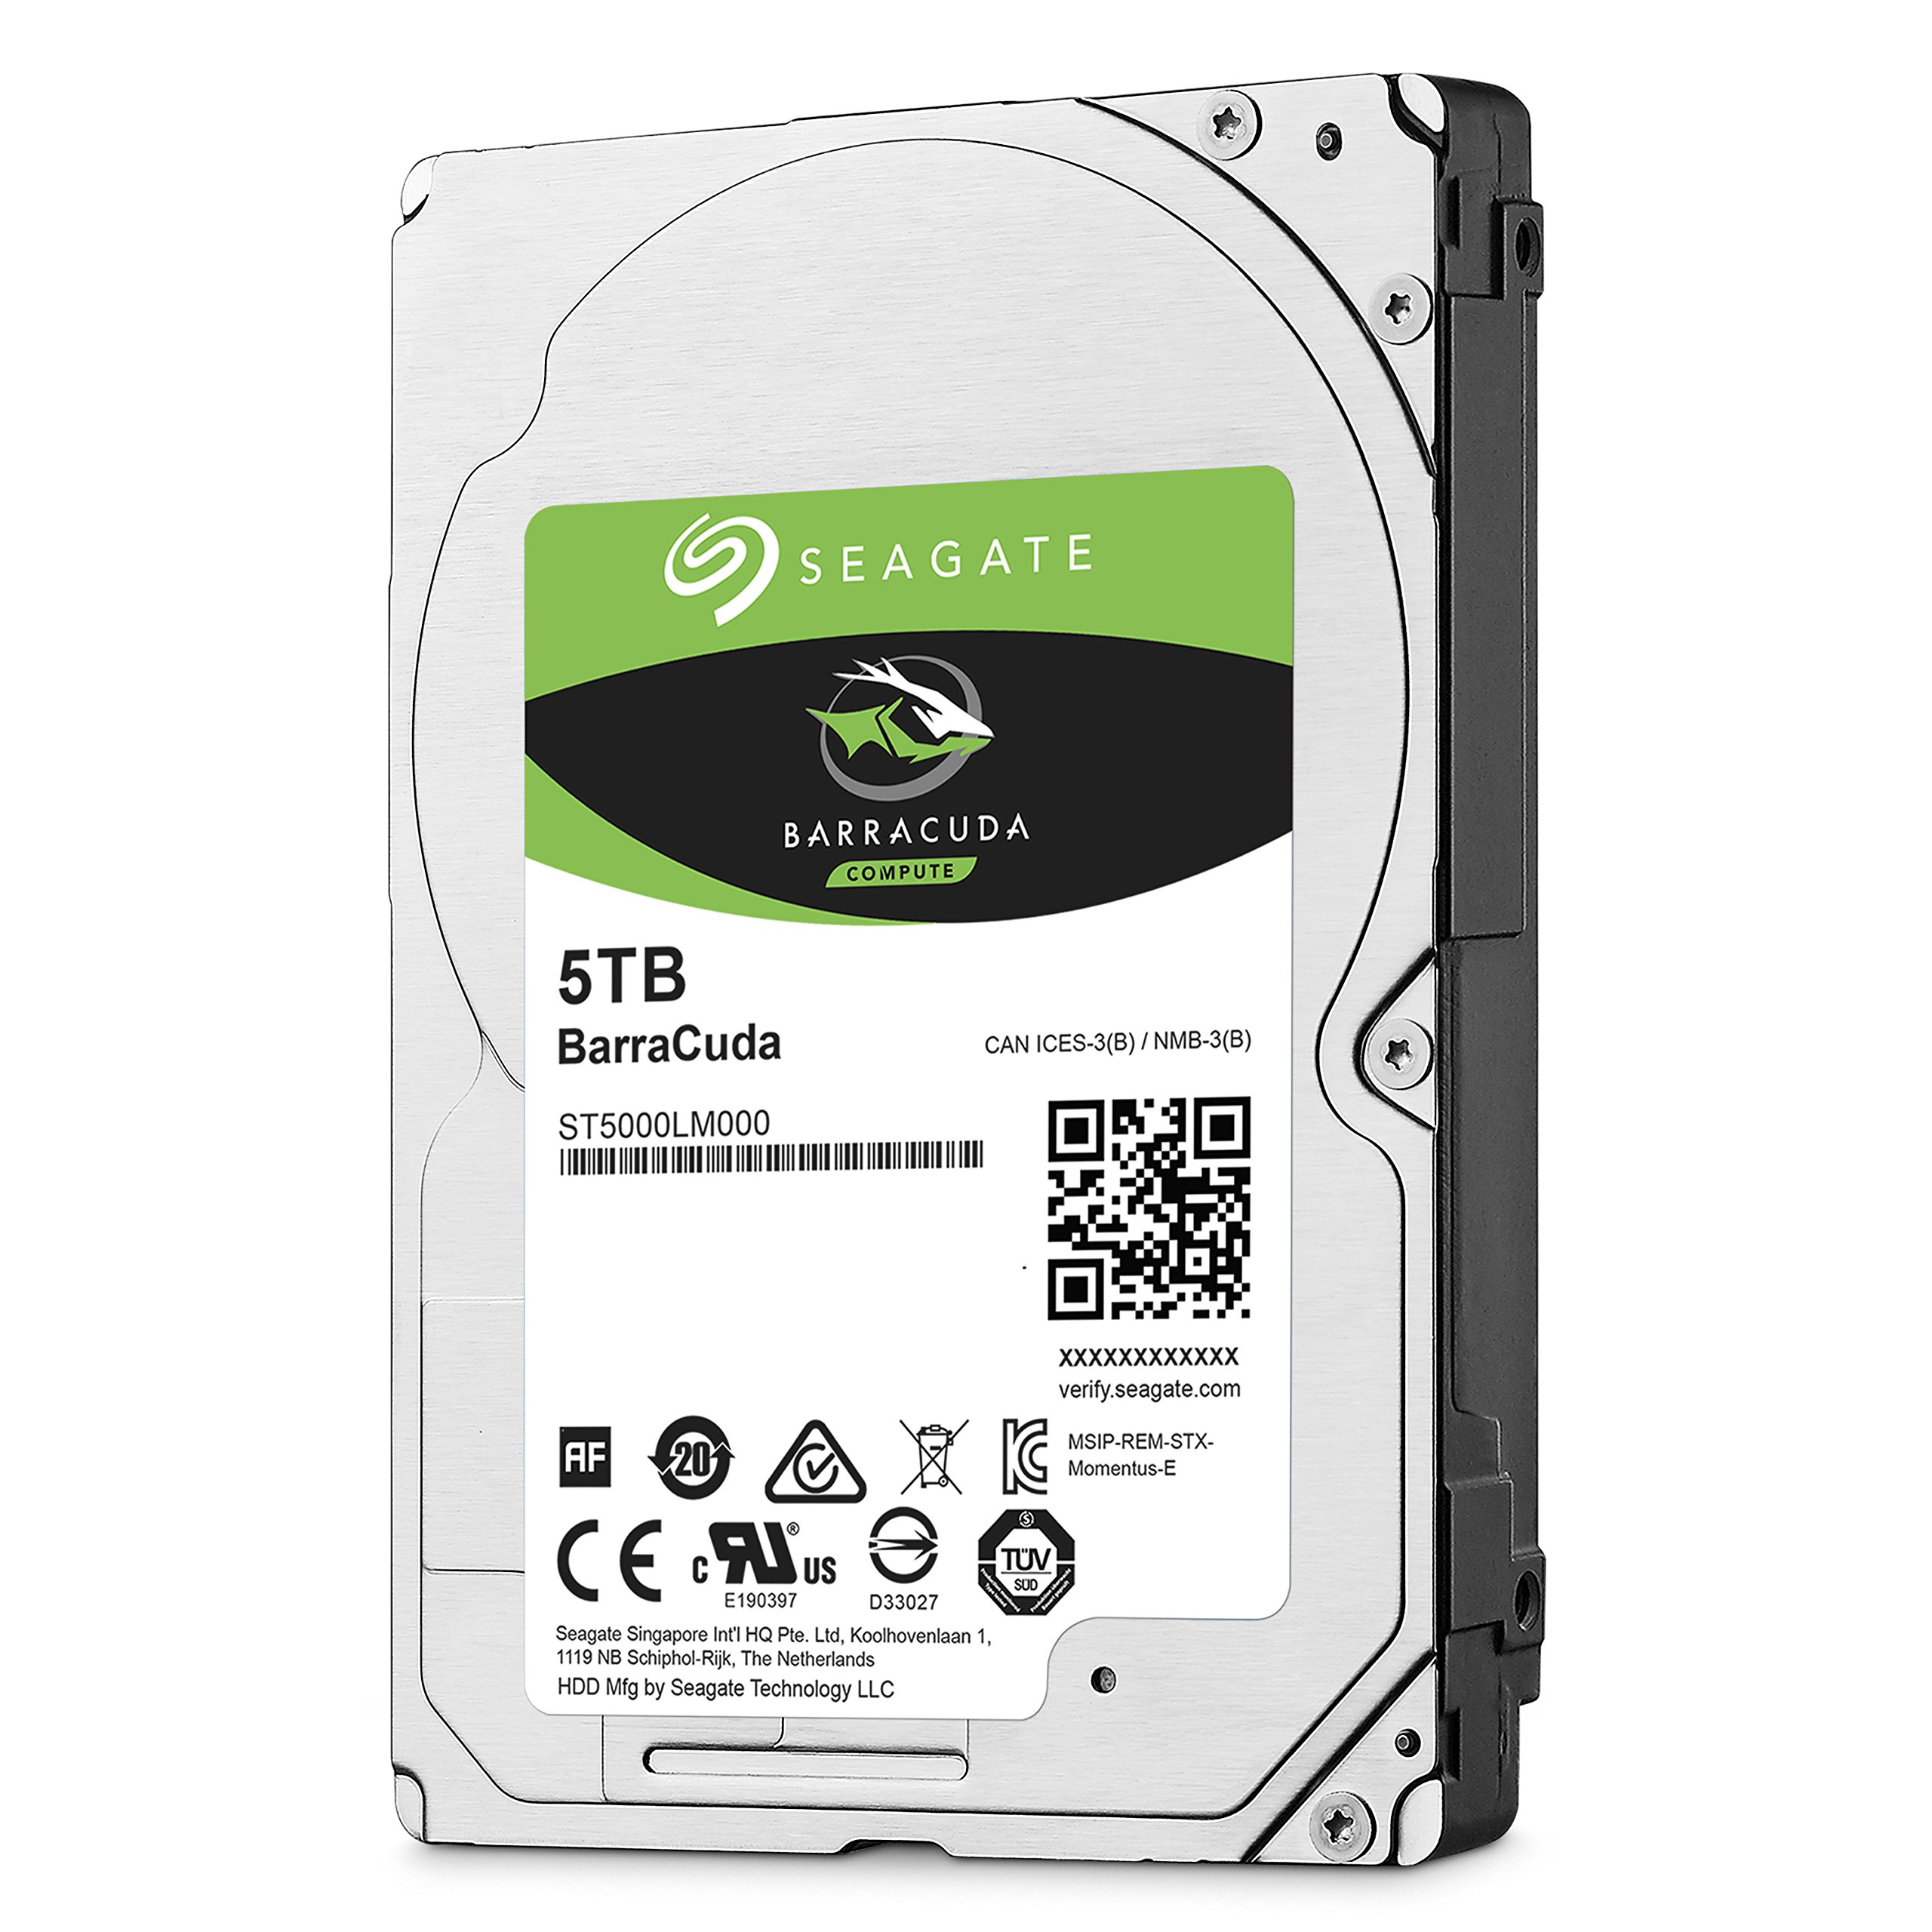 Seagate 5TB Barracuda Sata 6GB/s 128MB Cache 2.5-Inch 15mm Internal Bare/OEM Hard Drive (ST5000LM000) by Seagate (Image #4)